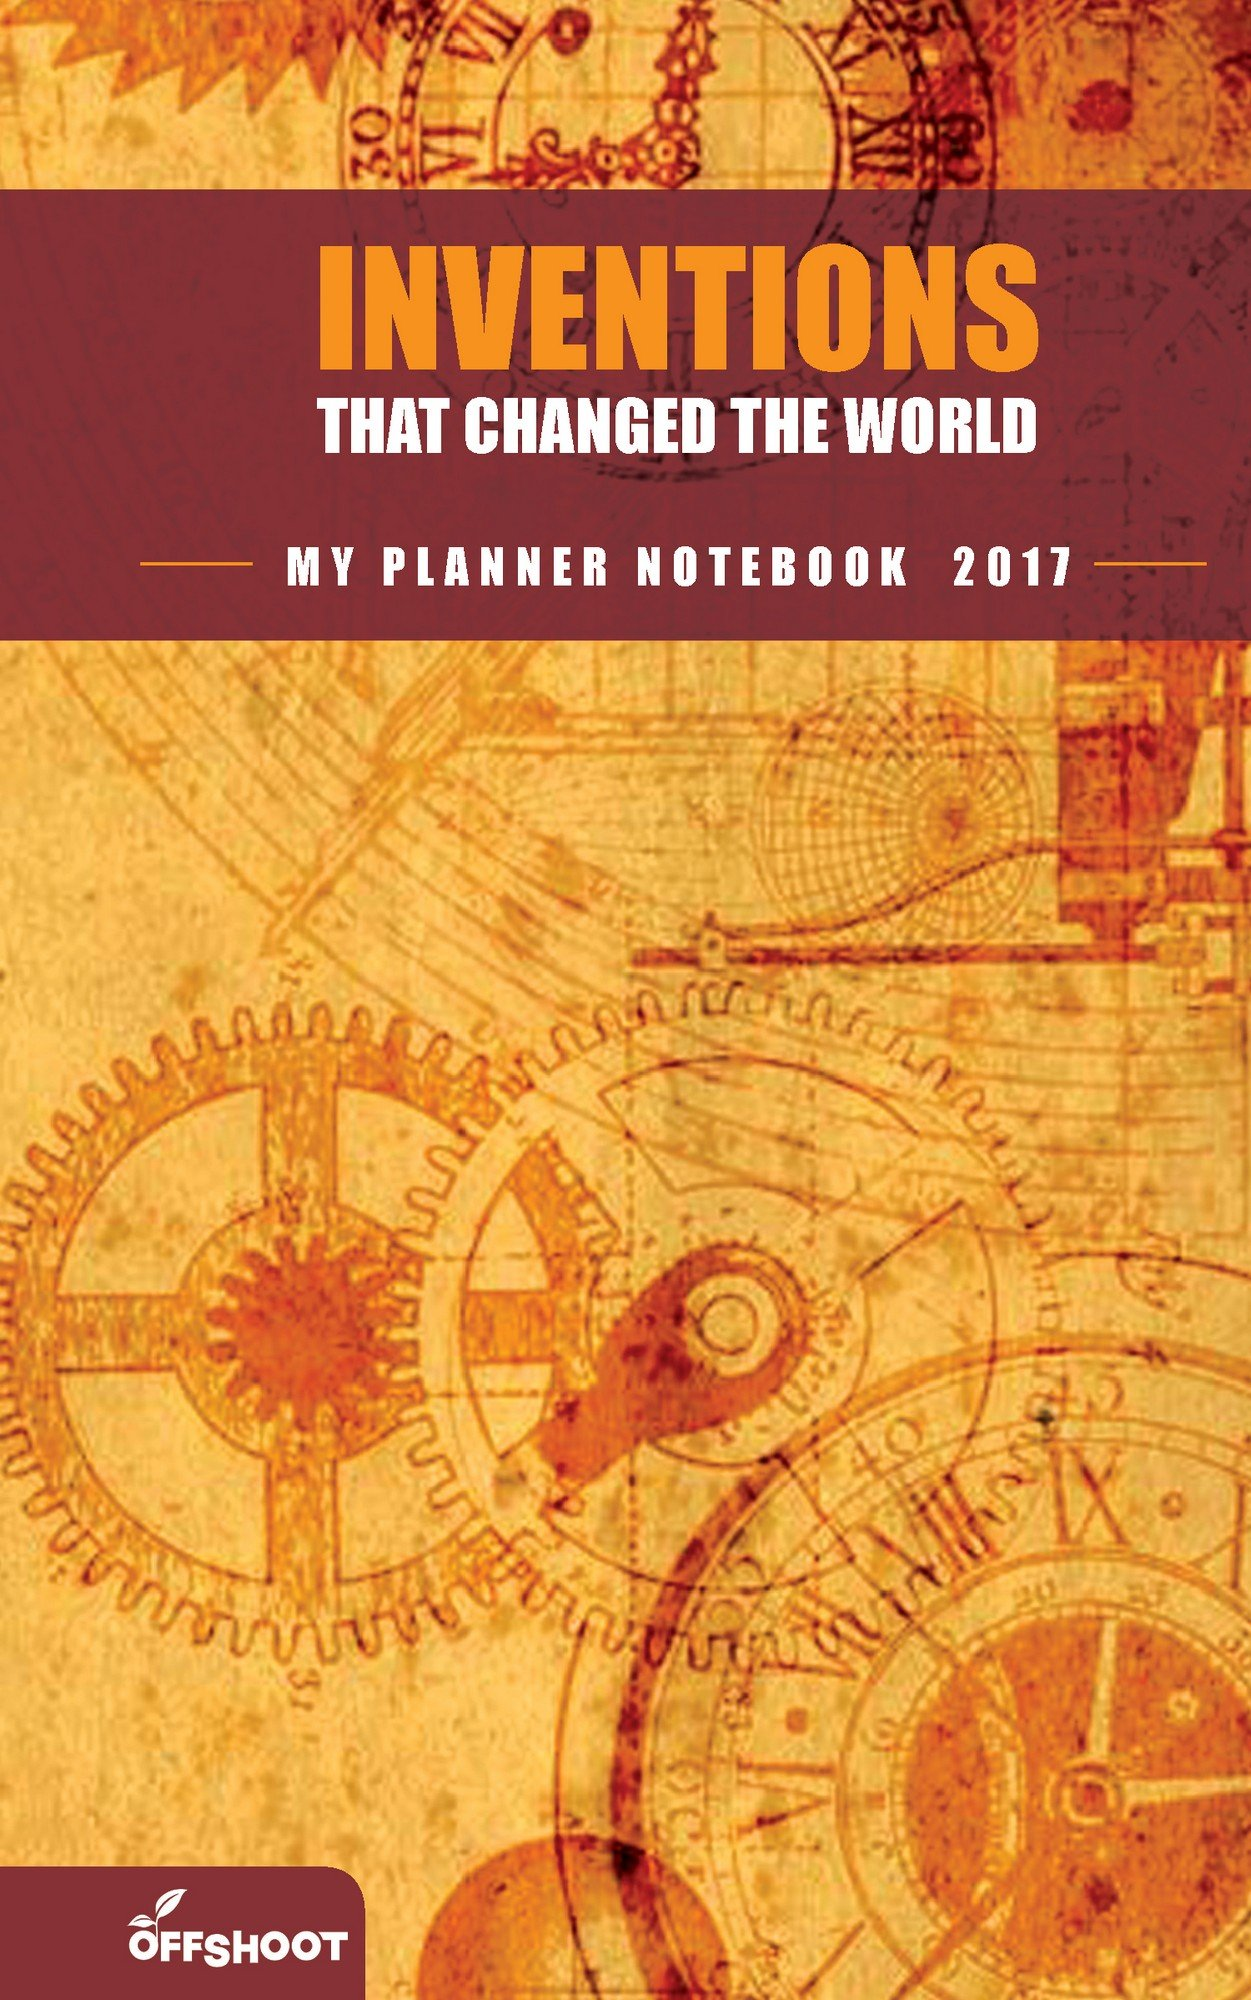 Inventions that Changed the World (My Planner Notebook)